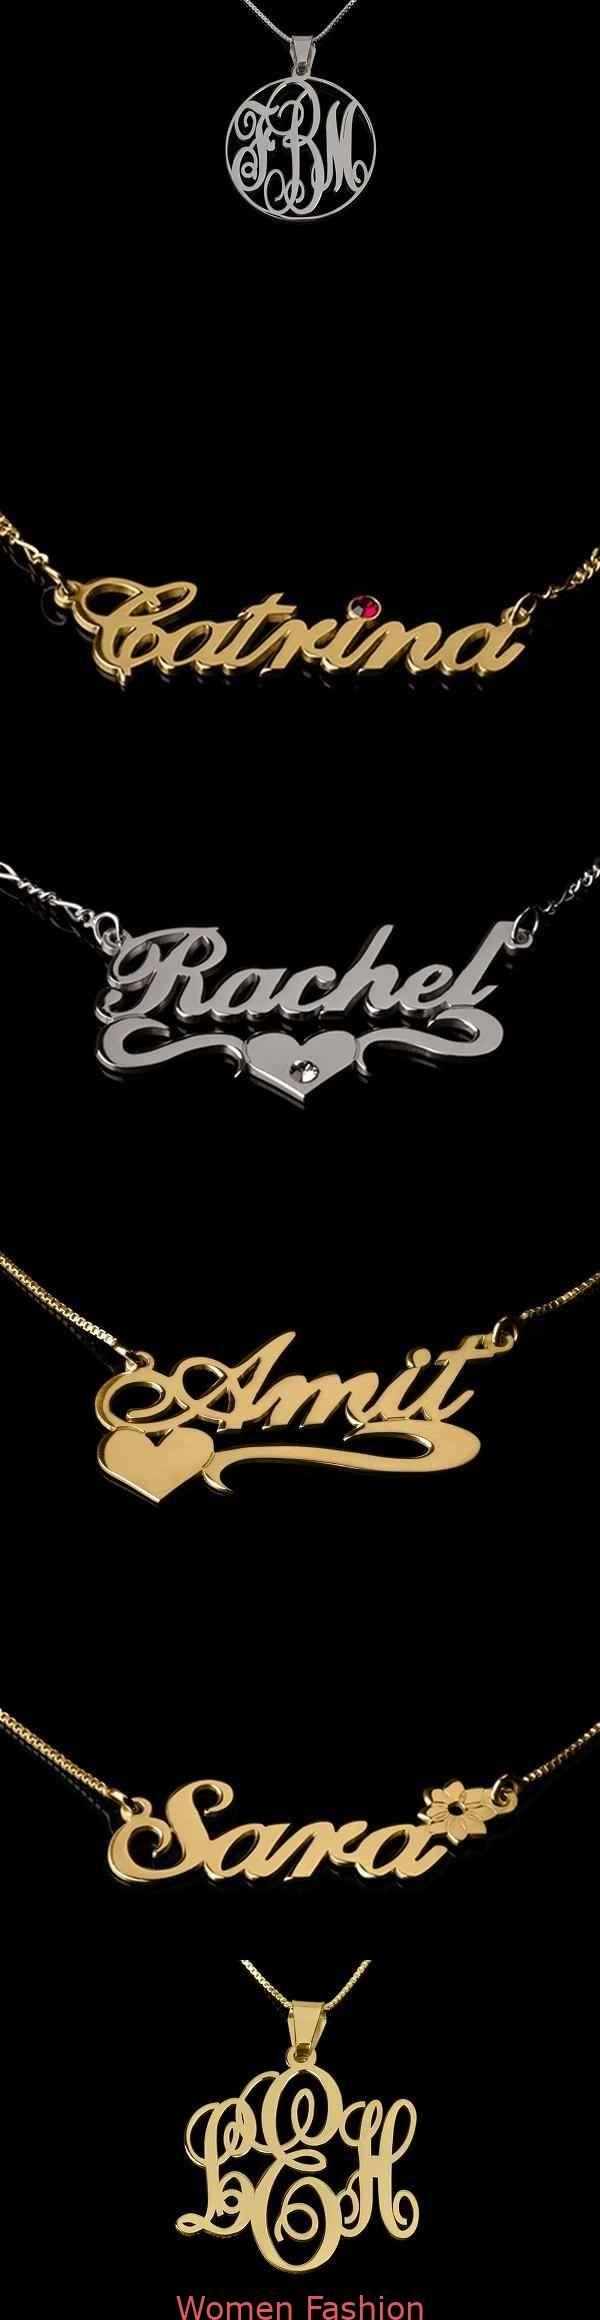 2018 Hottest personalized necklaces World Wide FREE SHIPPING Come to Yafeini t